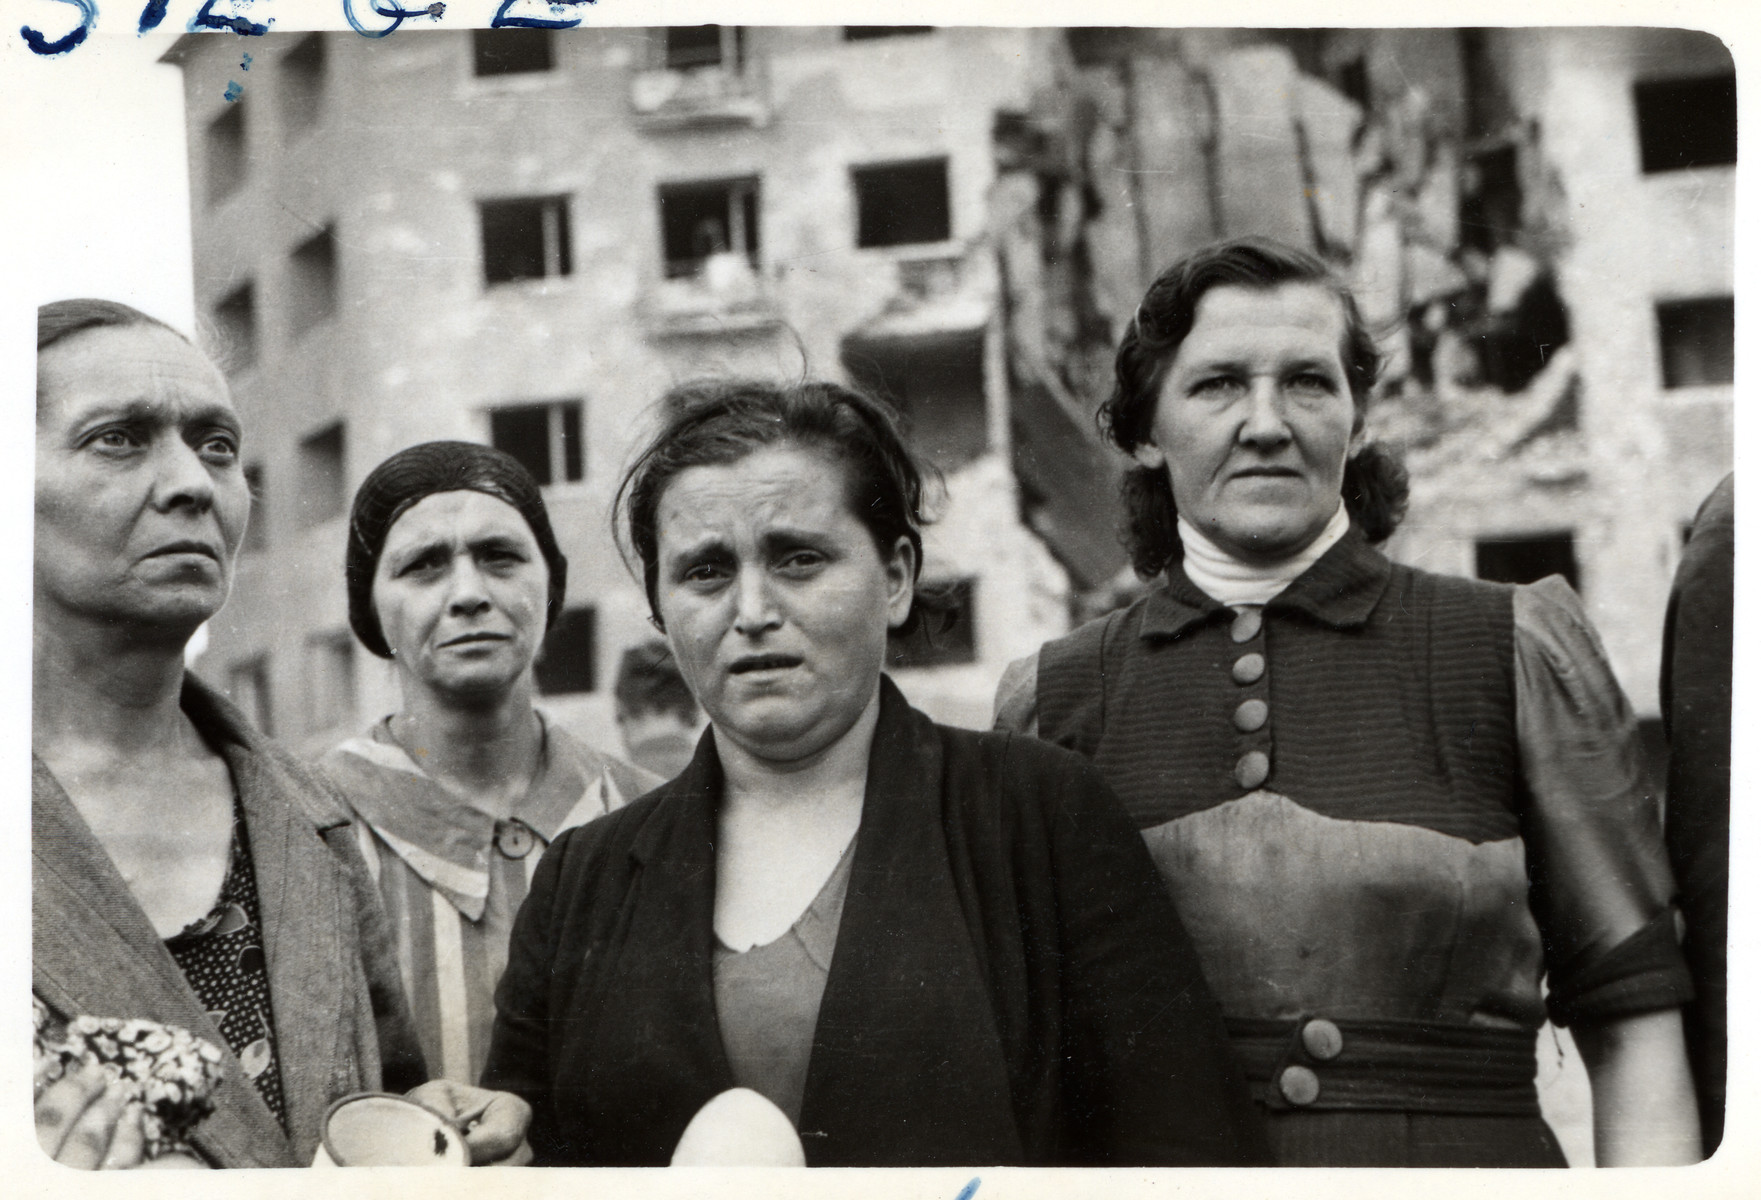 A group of Polish women stare ahead in front of a bombed out building in besieged Warsaw.